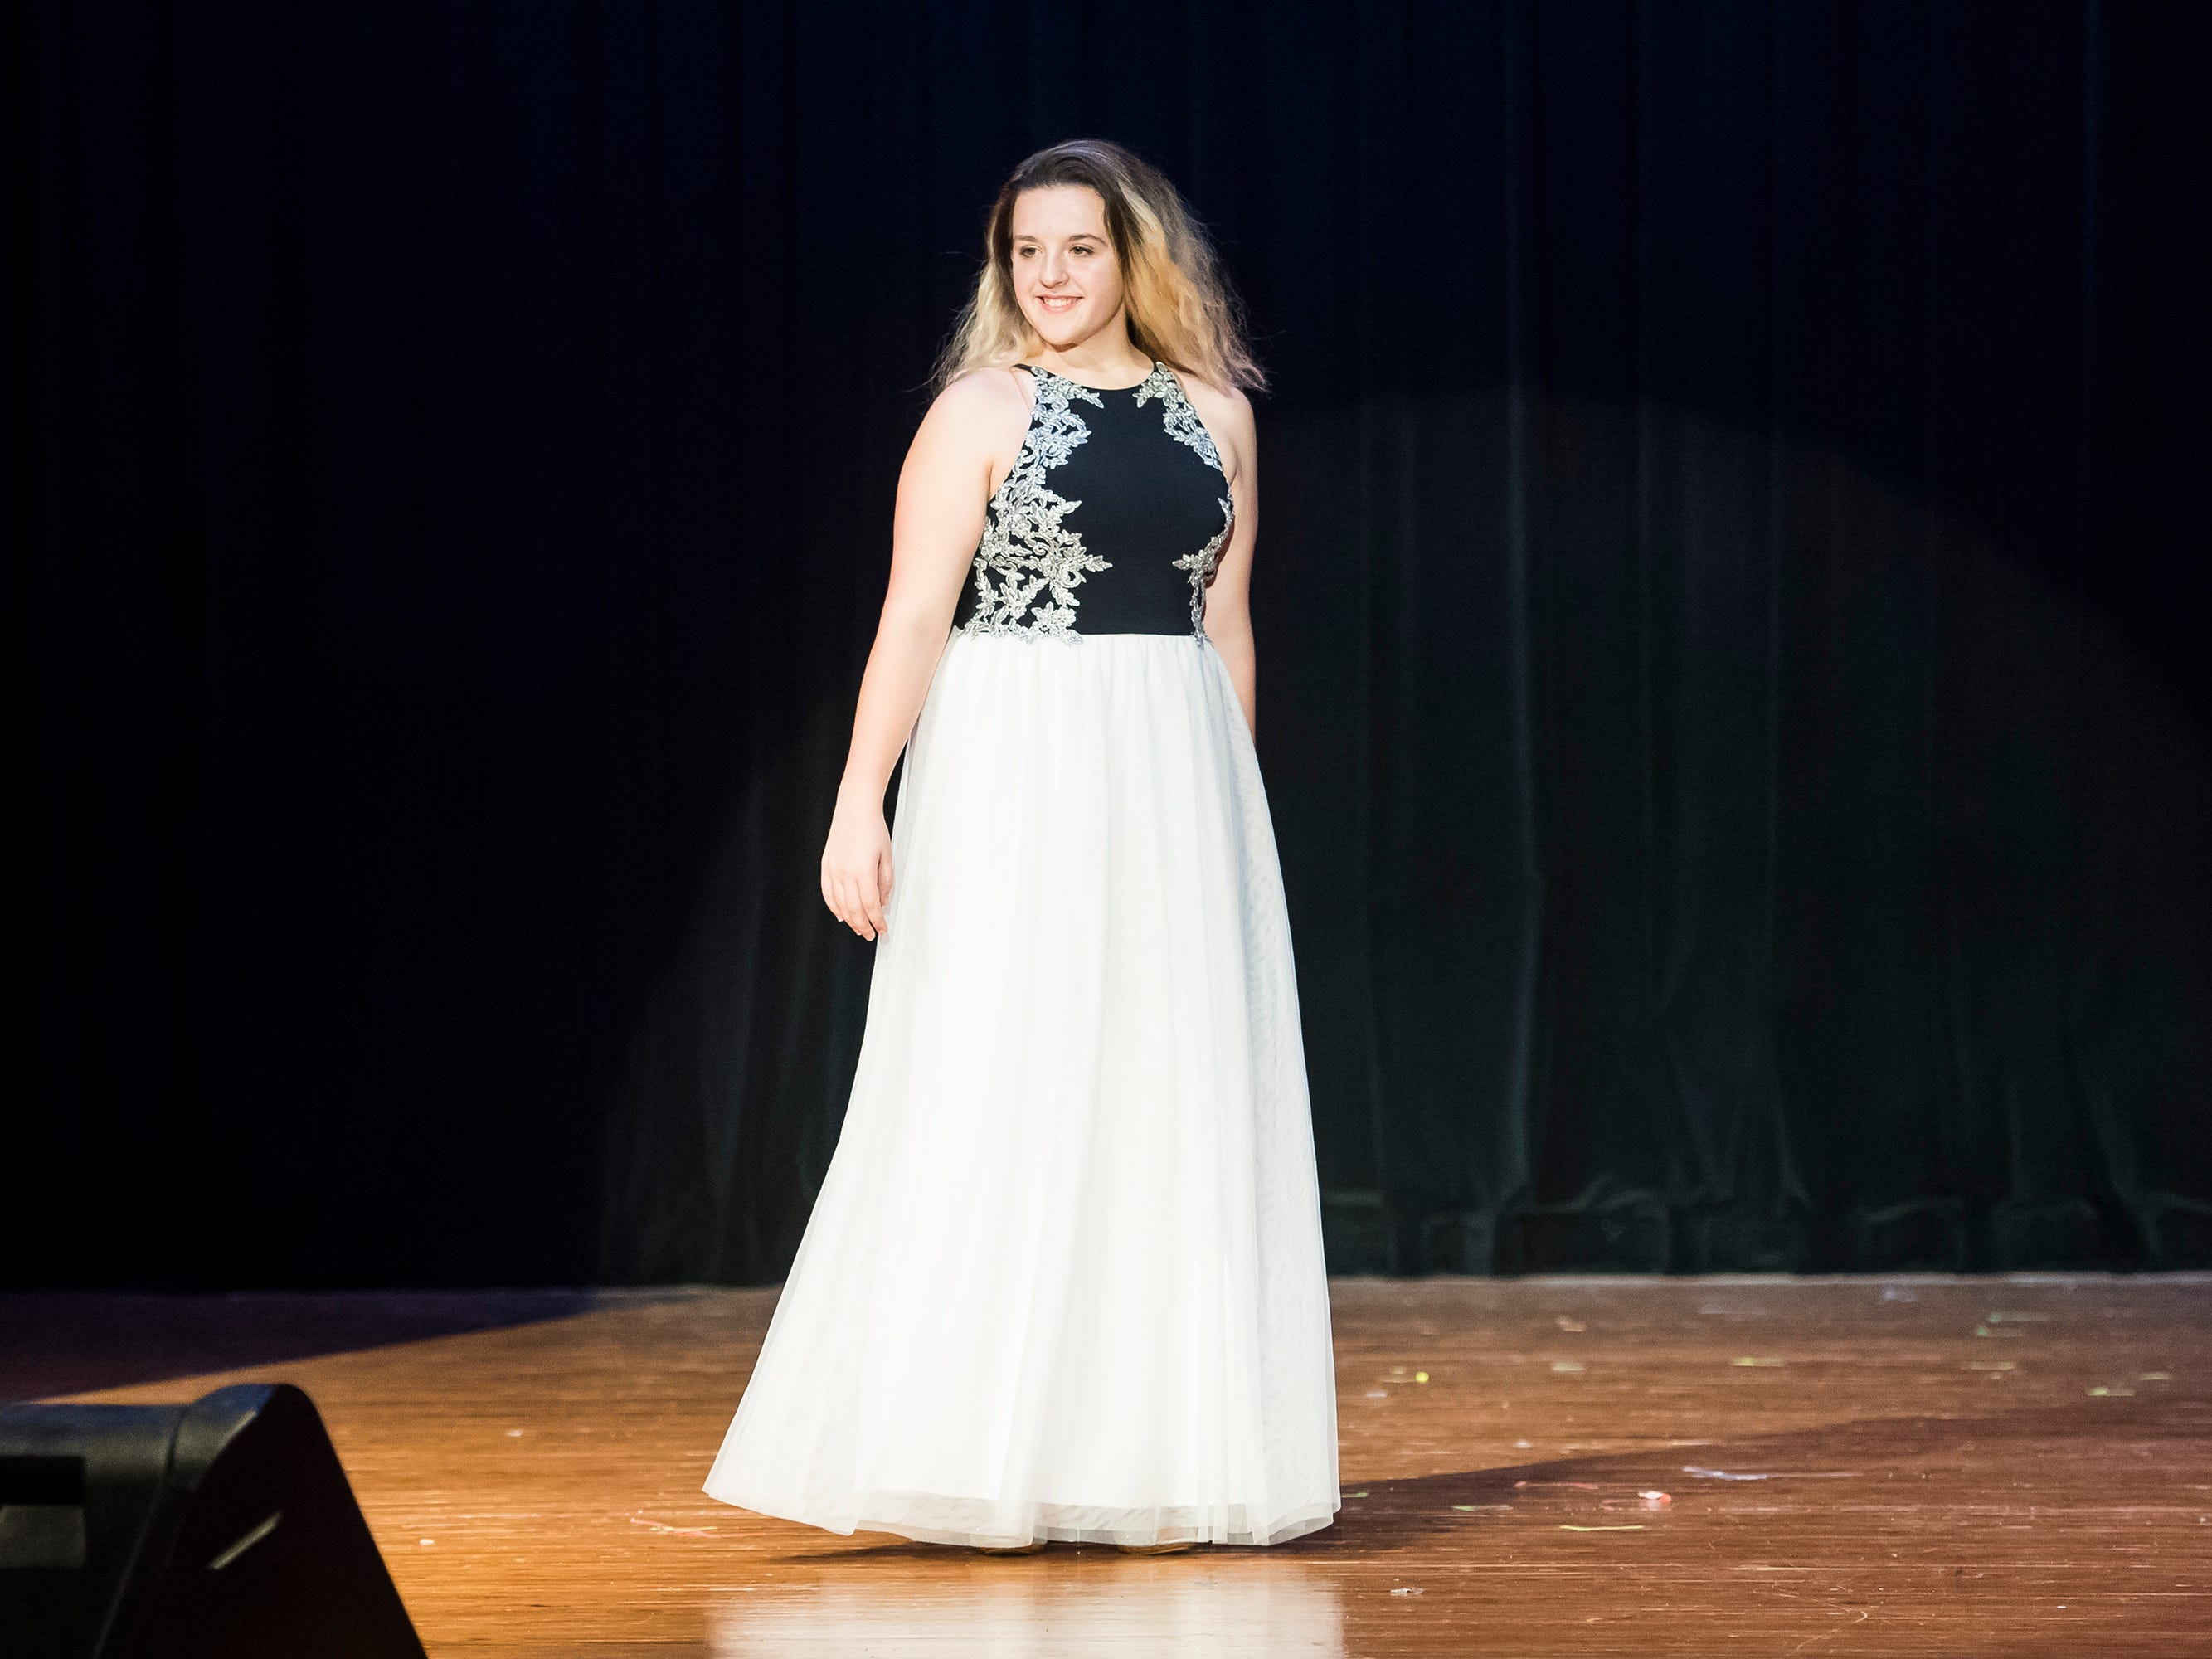 Delone Catholic's Mackenzie Buckley walks on stage in her evening gown during a rehearsal session for the Miss Hanover Area pageant at New Oxford High School on Oct. 17, 2018.